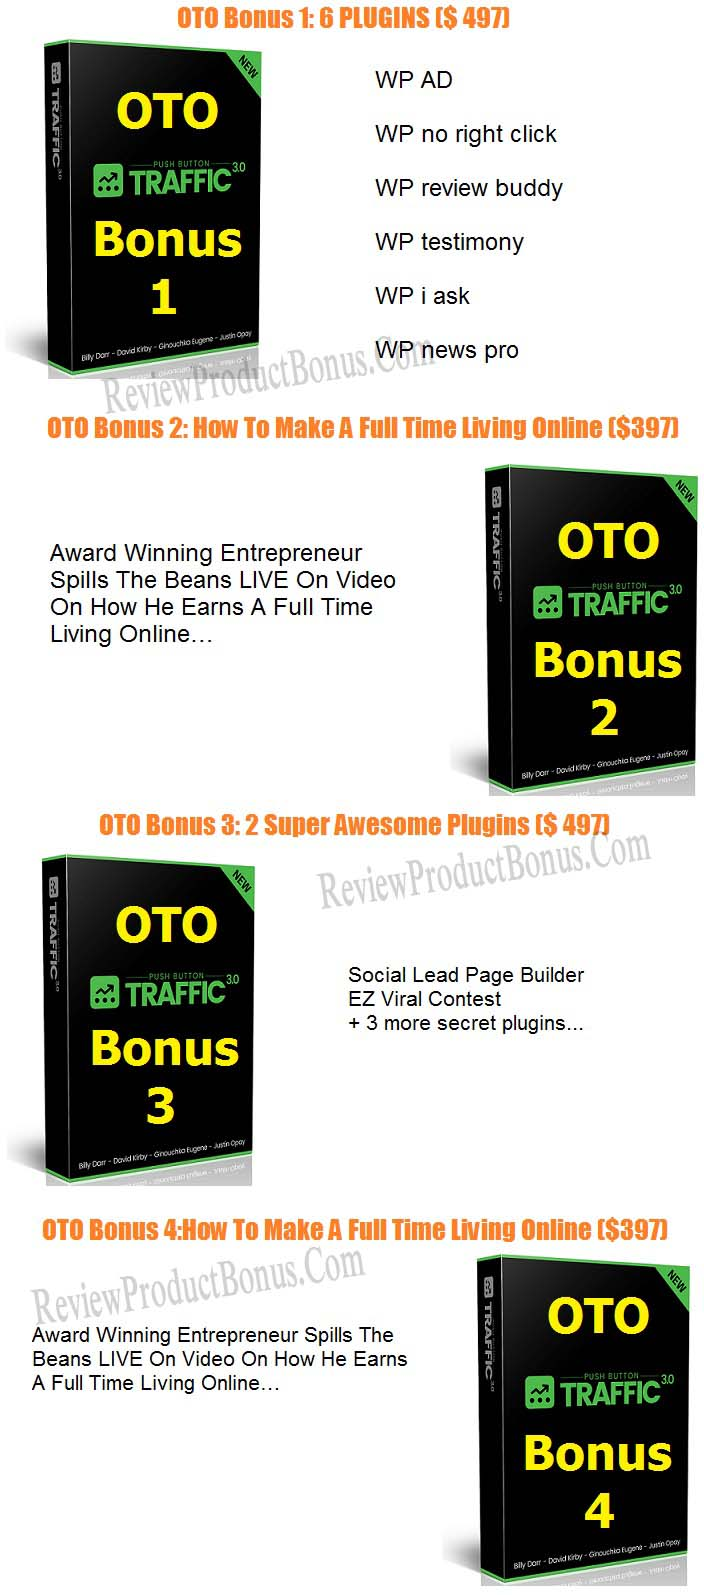 Push Button Traffic 3.0 Bonus OTO